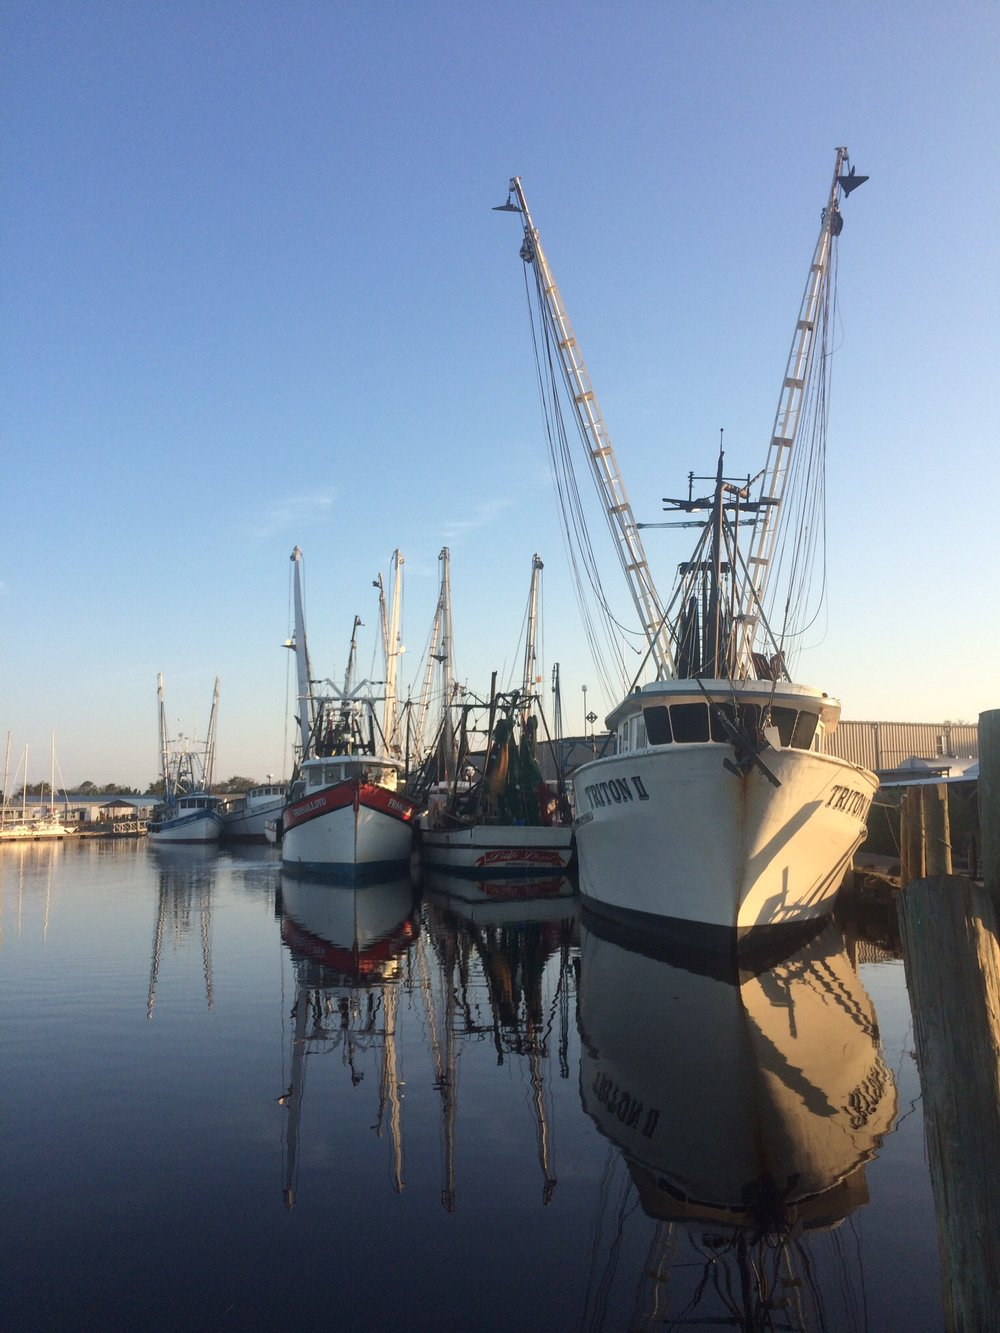 Calm after the storm: Shrimp boats at St. Augustine looked great, but were still moored this week.